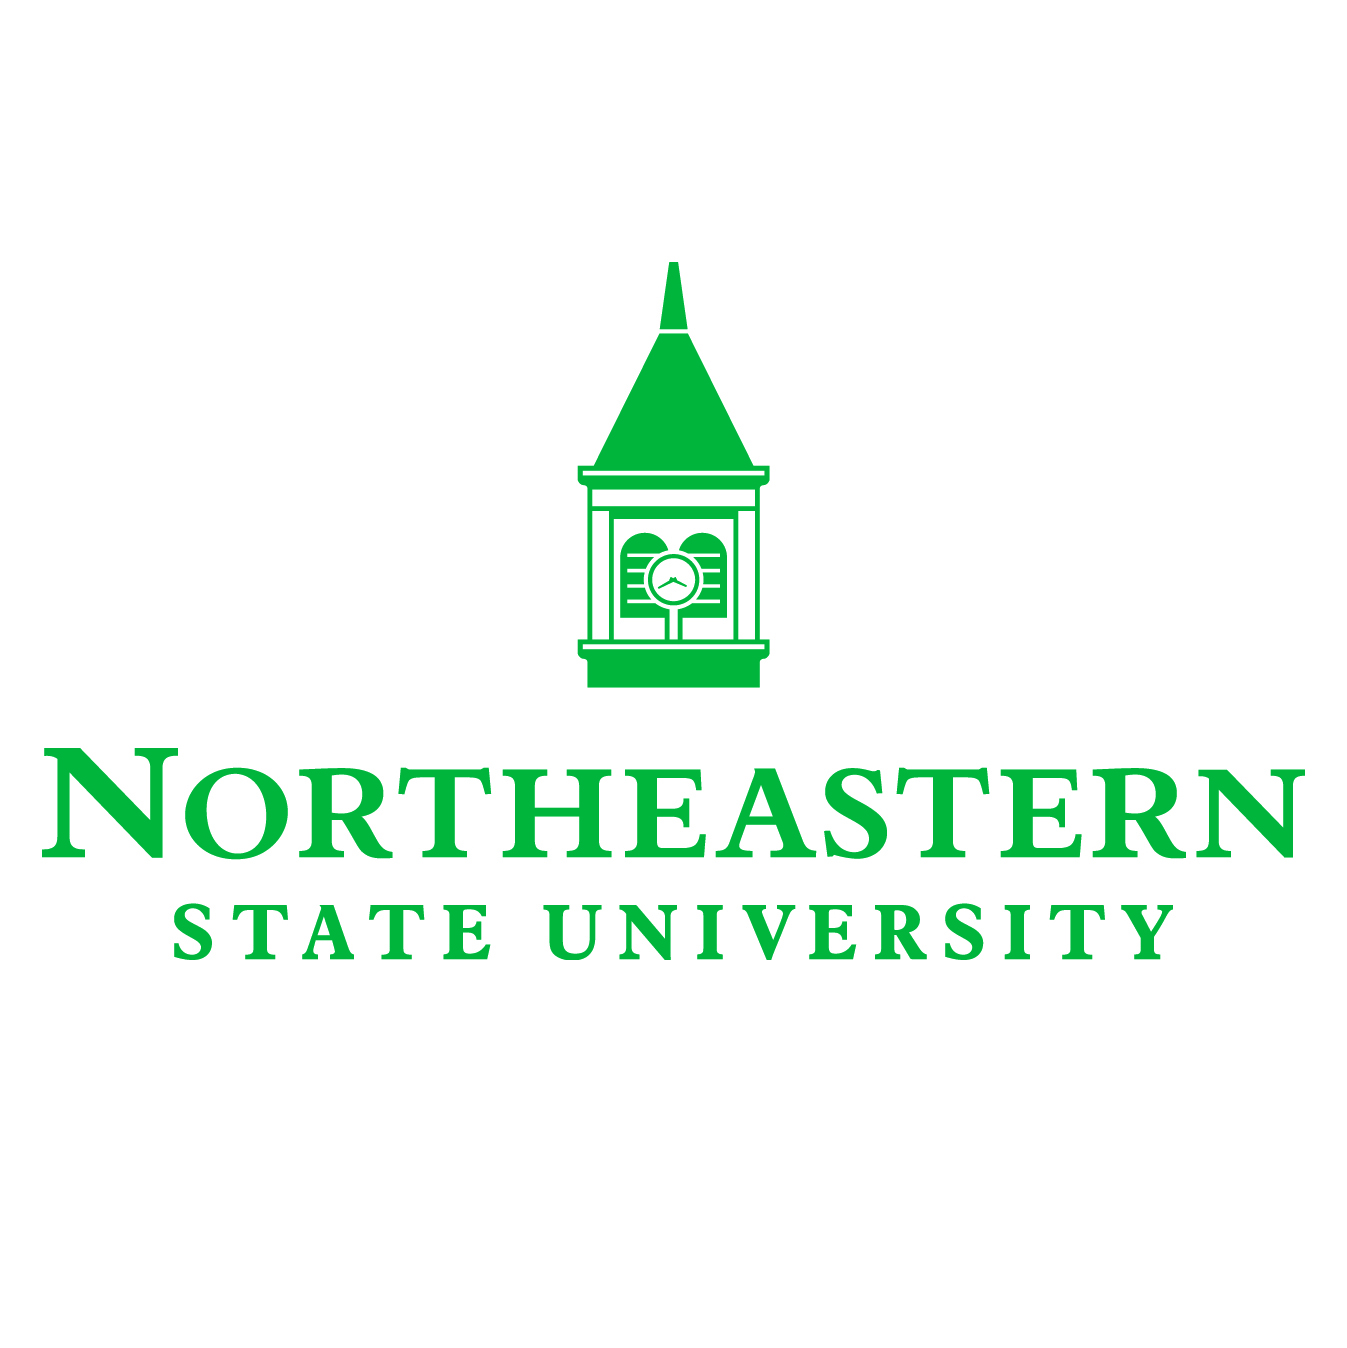 NSU-center-green-square.jpg